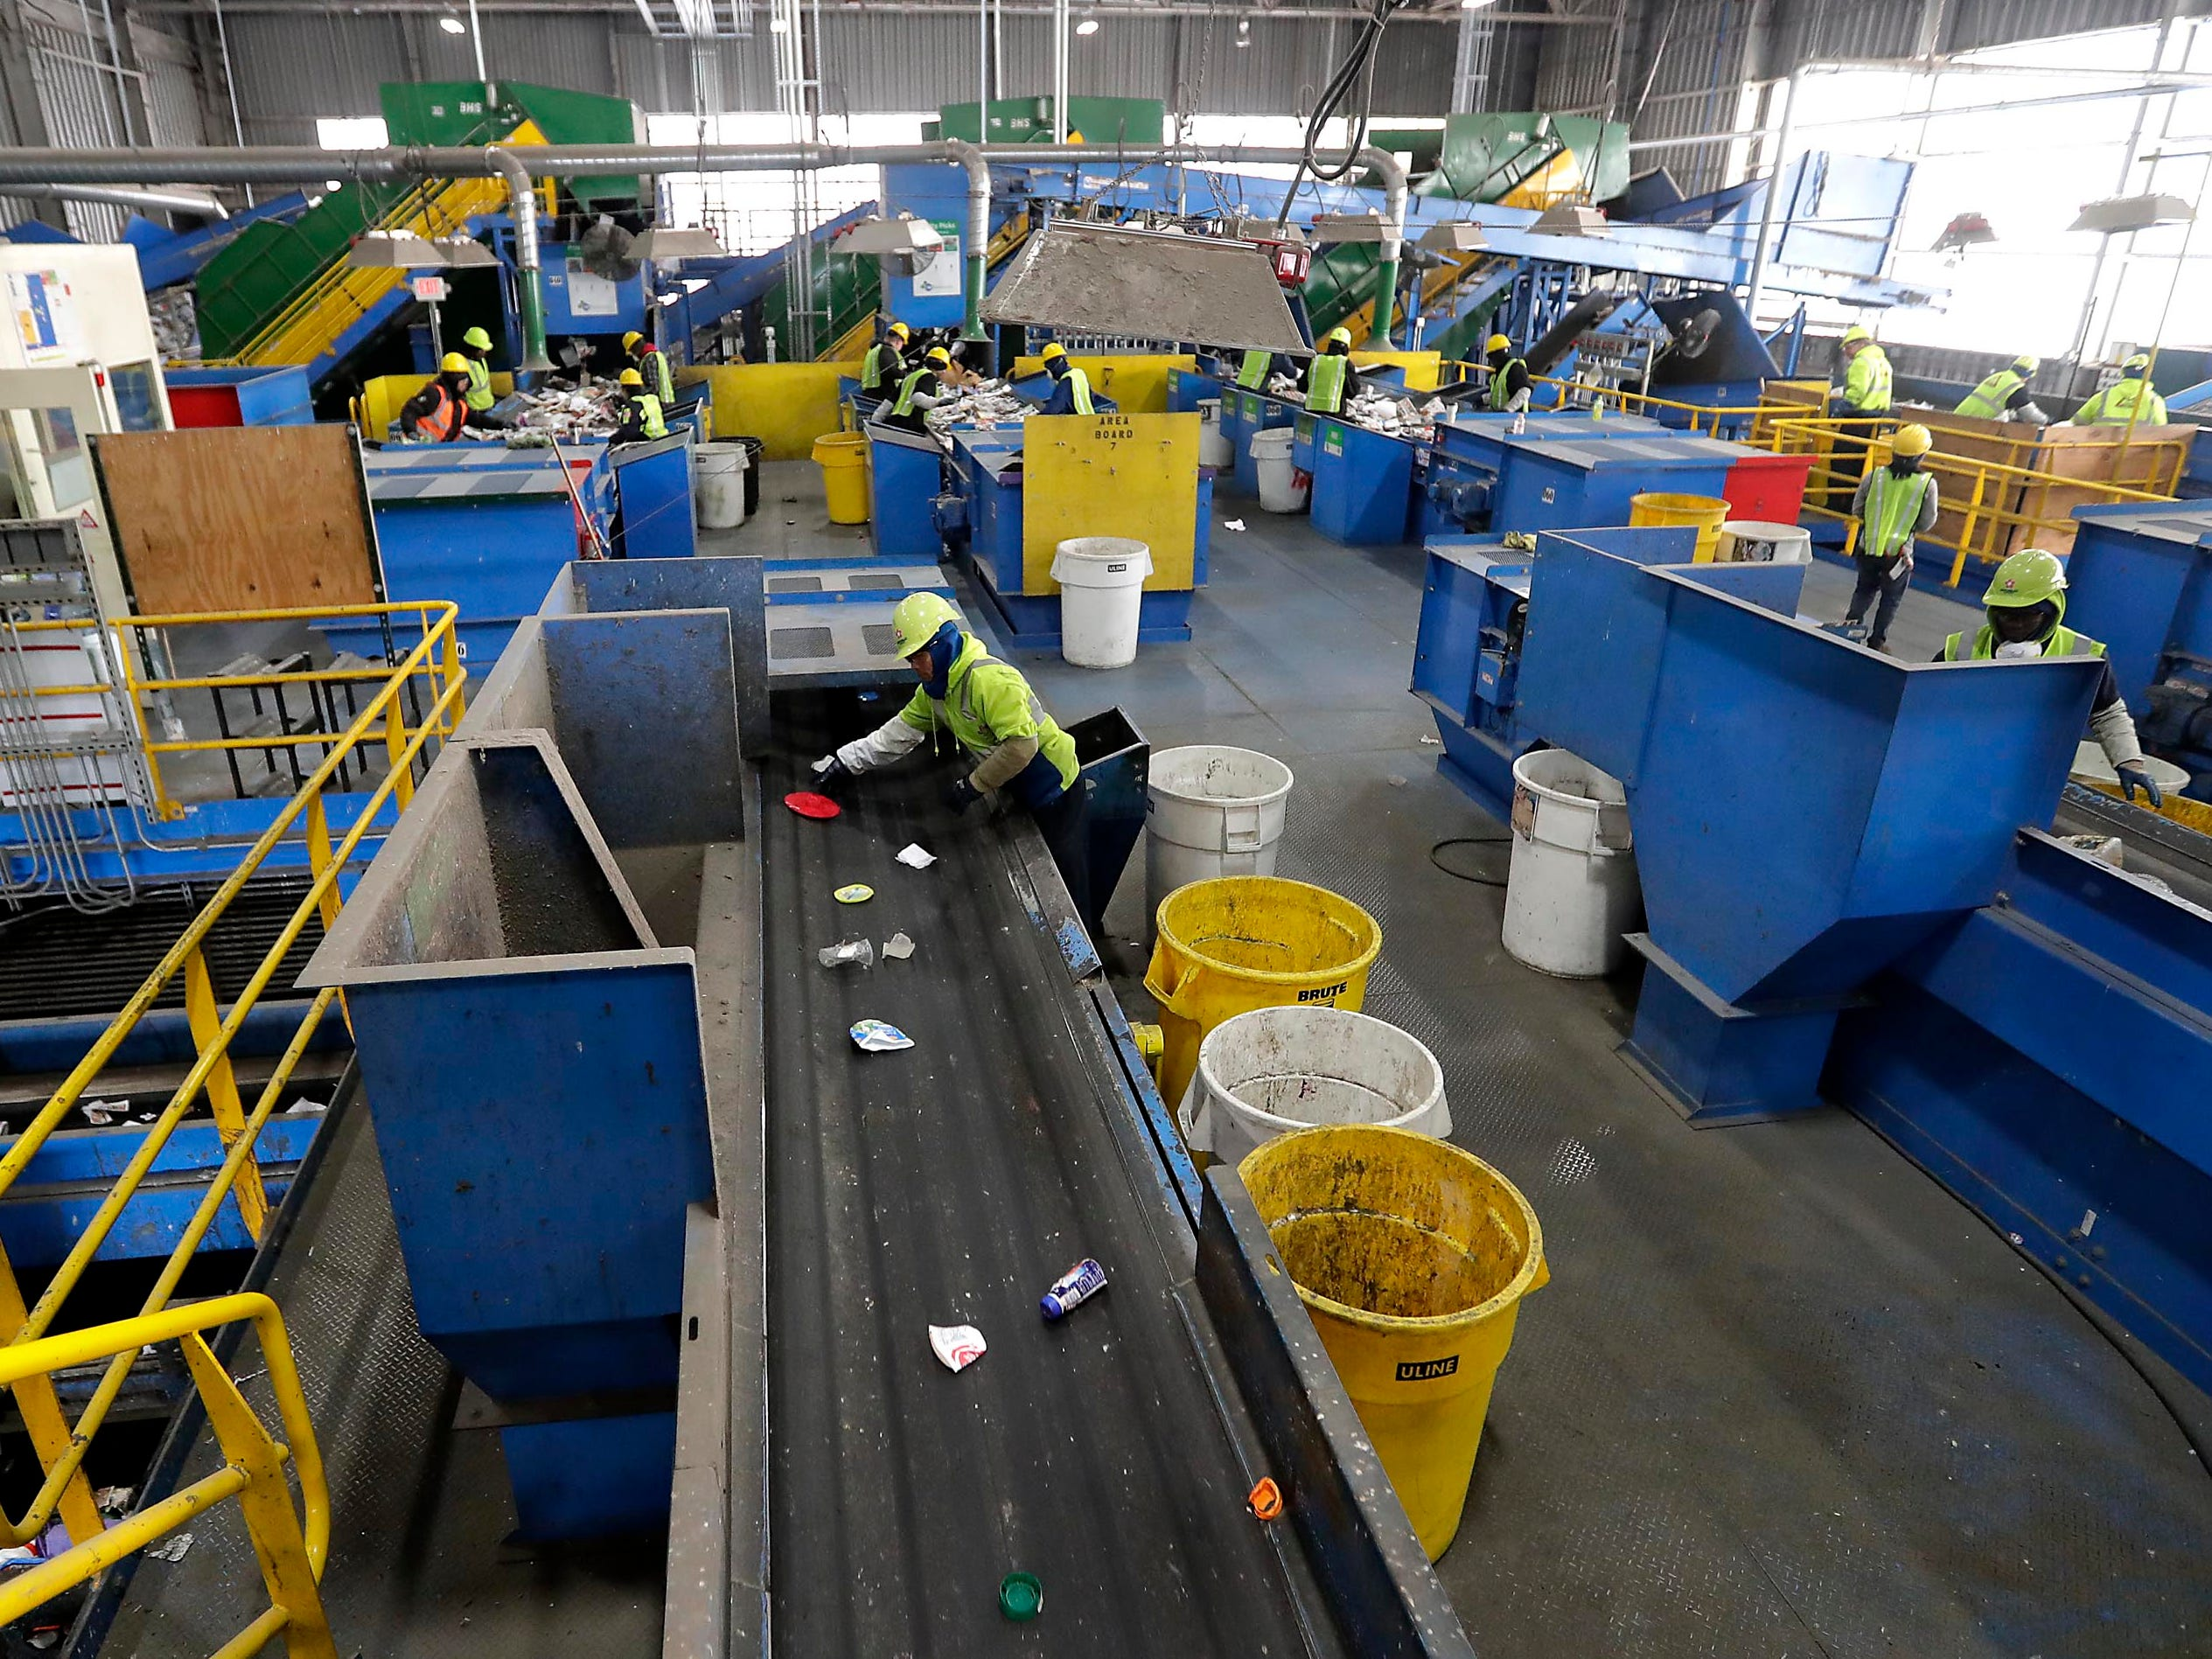 Workers carefully sort items on a conveyor for recycling.